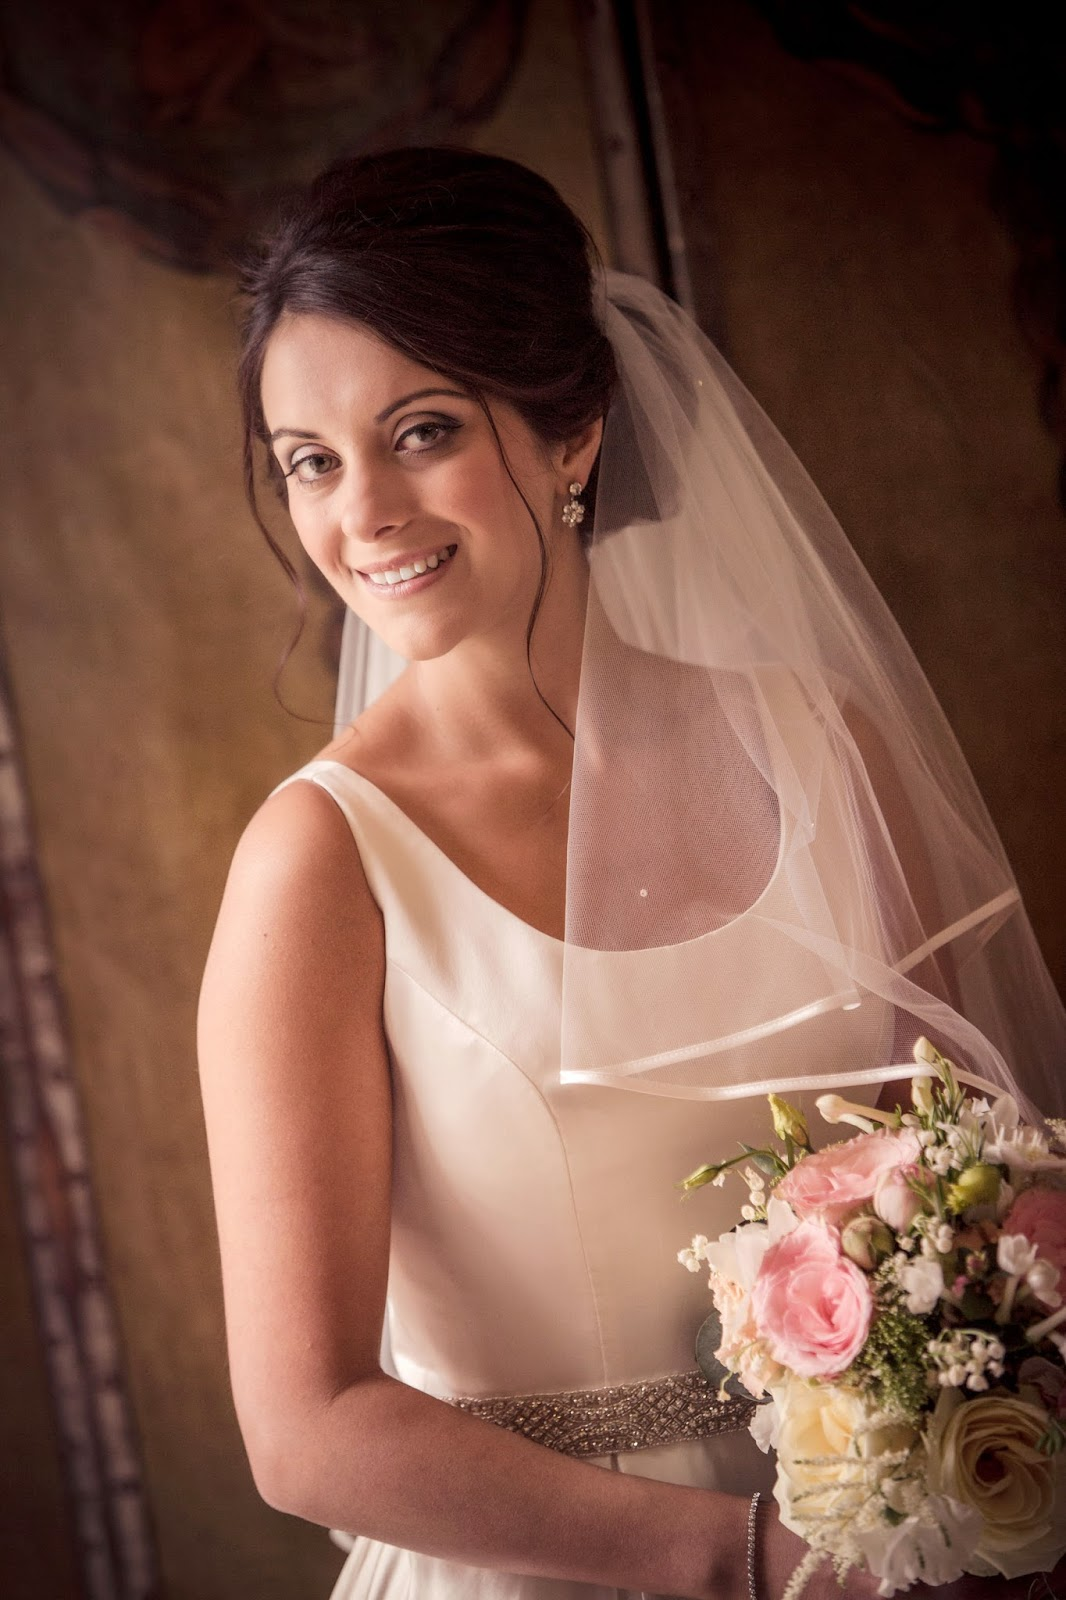 Bride Gemma poses for a picture before the ceremony. A textured bun with soft volume is the perfect style for a full veil